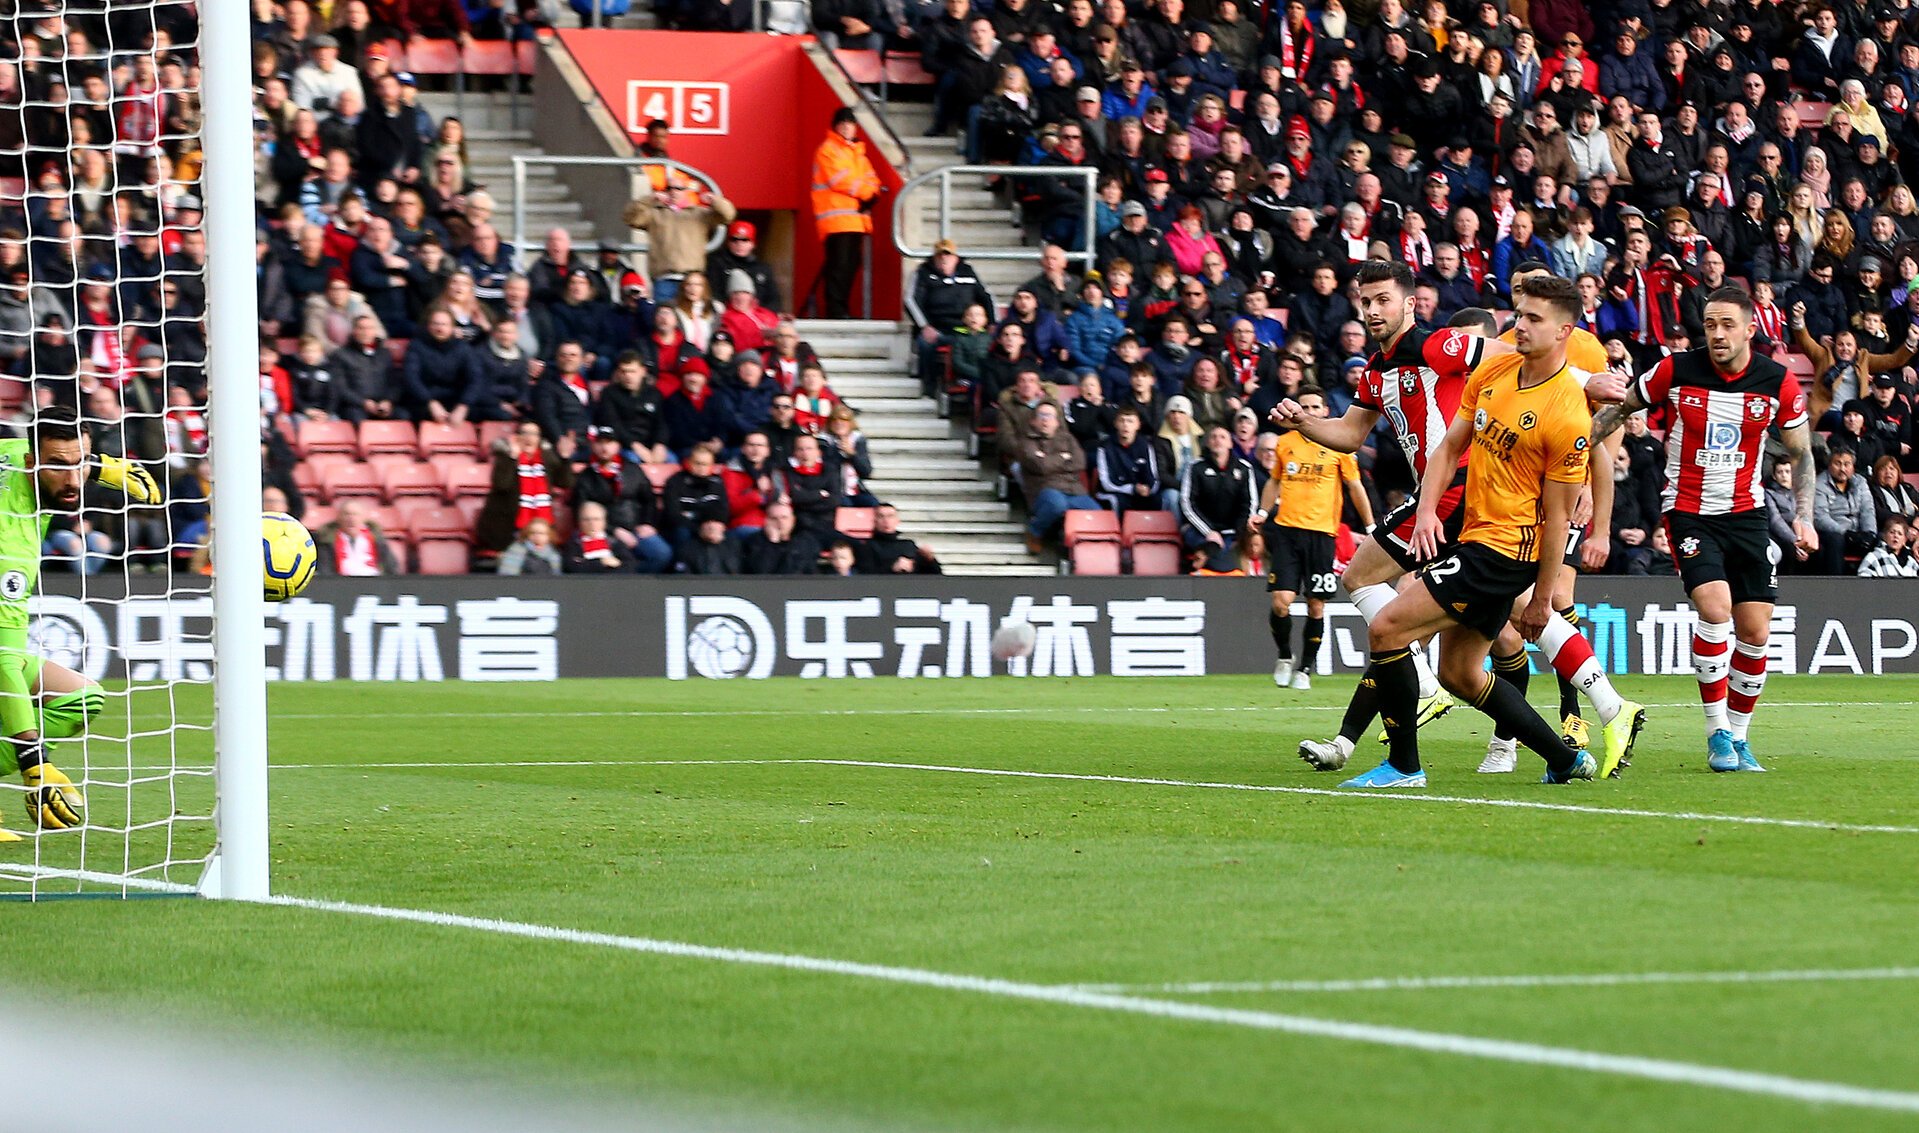 SOUTHAMPTON, ENGLAND - JANUARY 18: Shane Long(L) of Southampton scores with his head to make it 2-0 during the Premier League match between Southampton FC and Wolverhampton Wanderers at St Mary's Stadium on January 18, 2020 in Southampton, United Kingdom. (Photo by Matt Watson/Southampton FC via Getty Images)